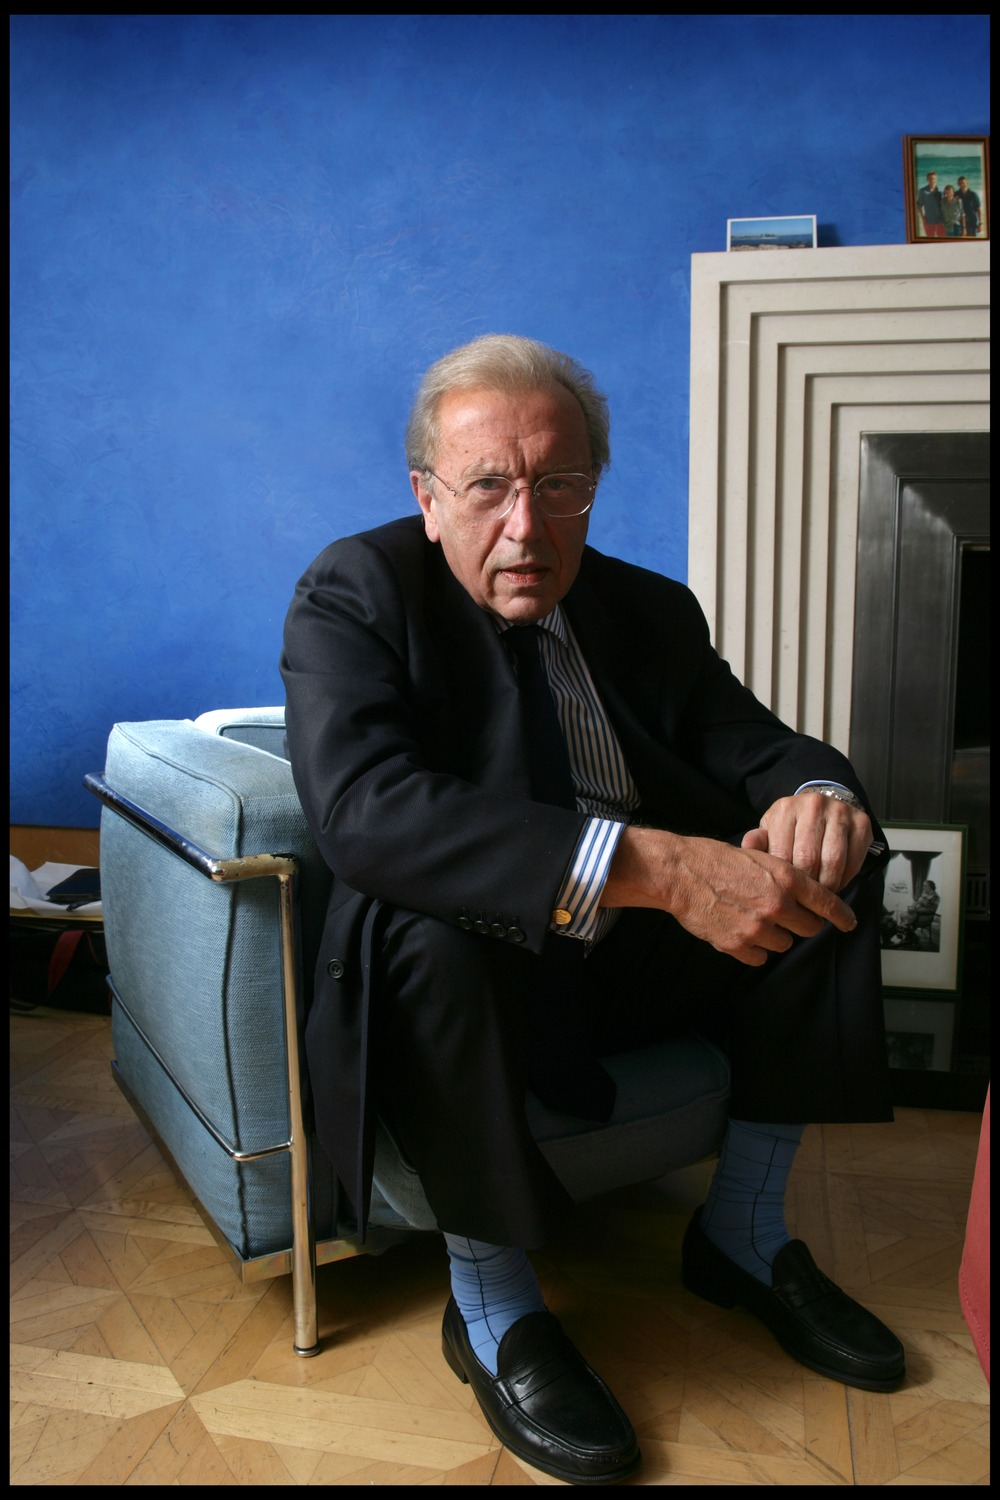 Sir David Frost, journalist